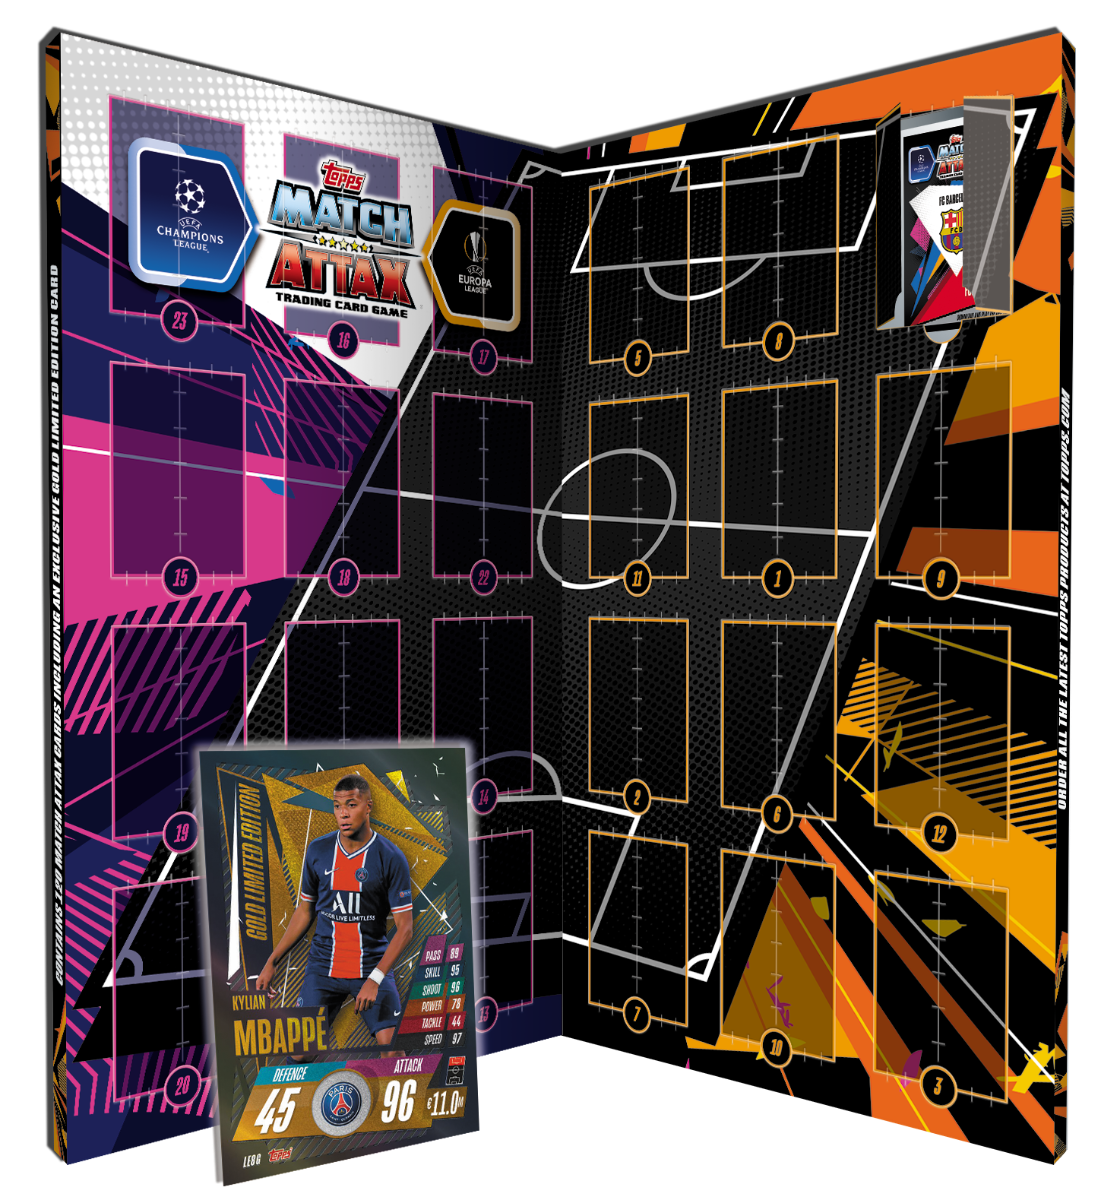 TOPPS MATCH ATTAX CHAMPIONS LEAGUE 2020-21 CALENDRIER AVENT